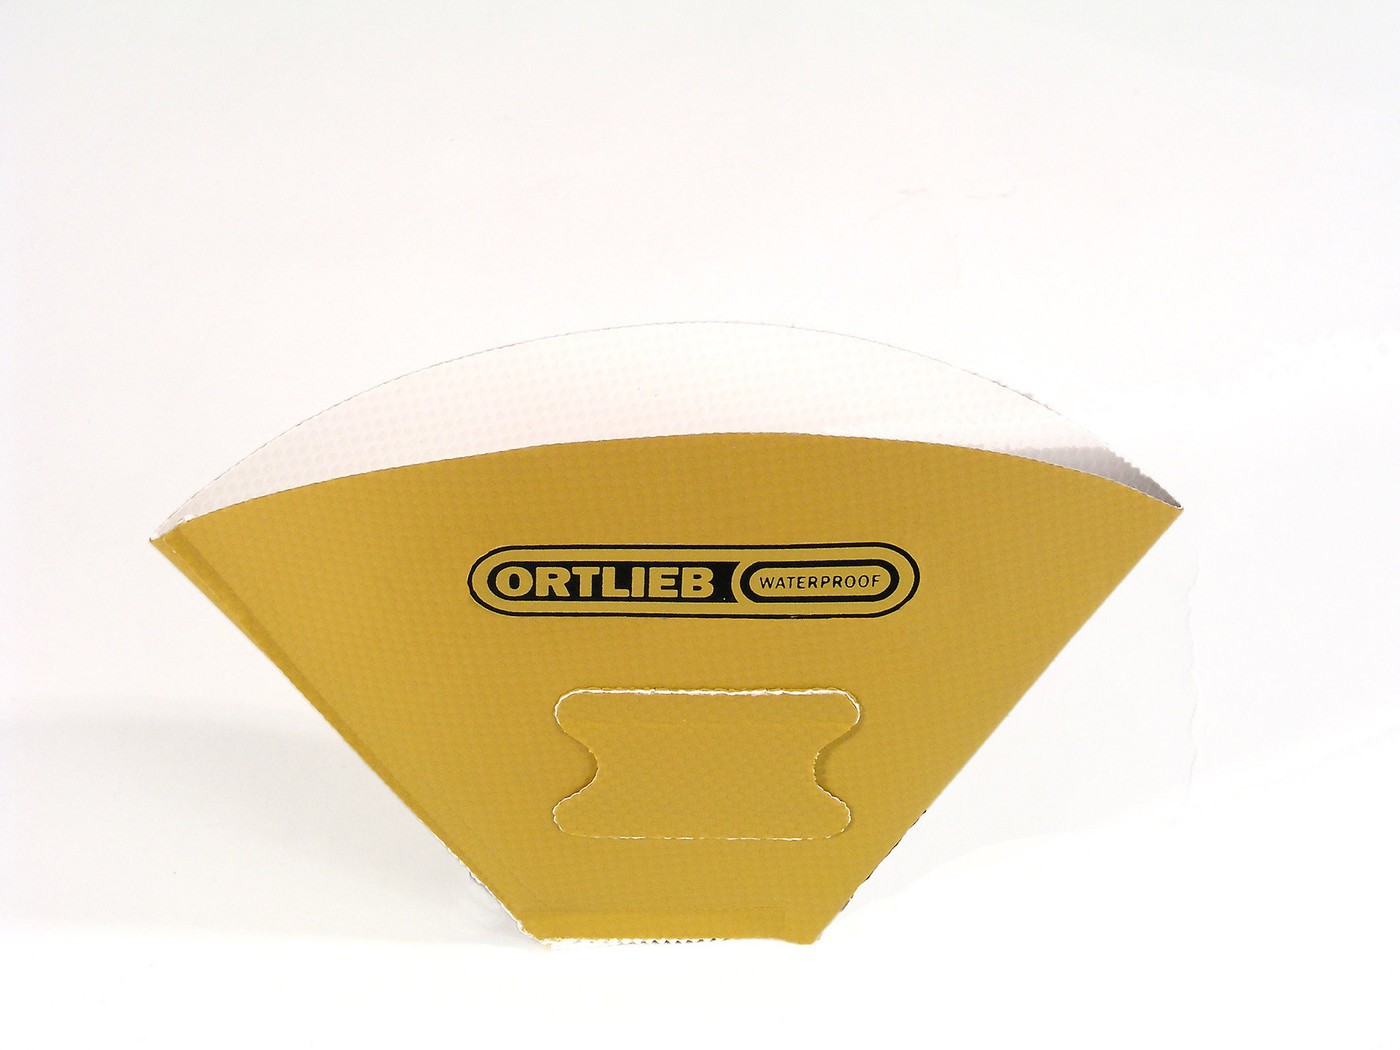 Ortlieb Filter holder